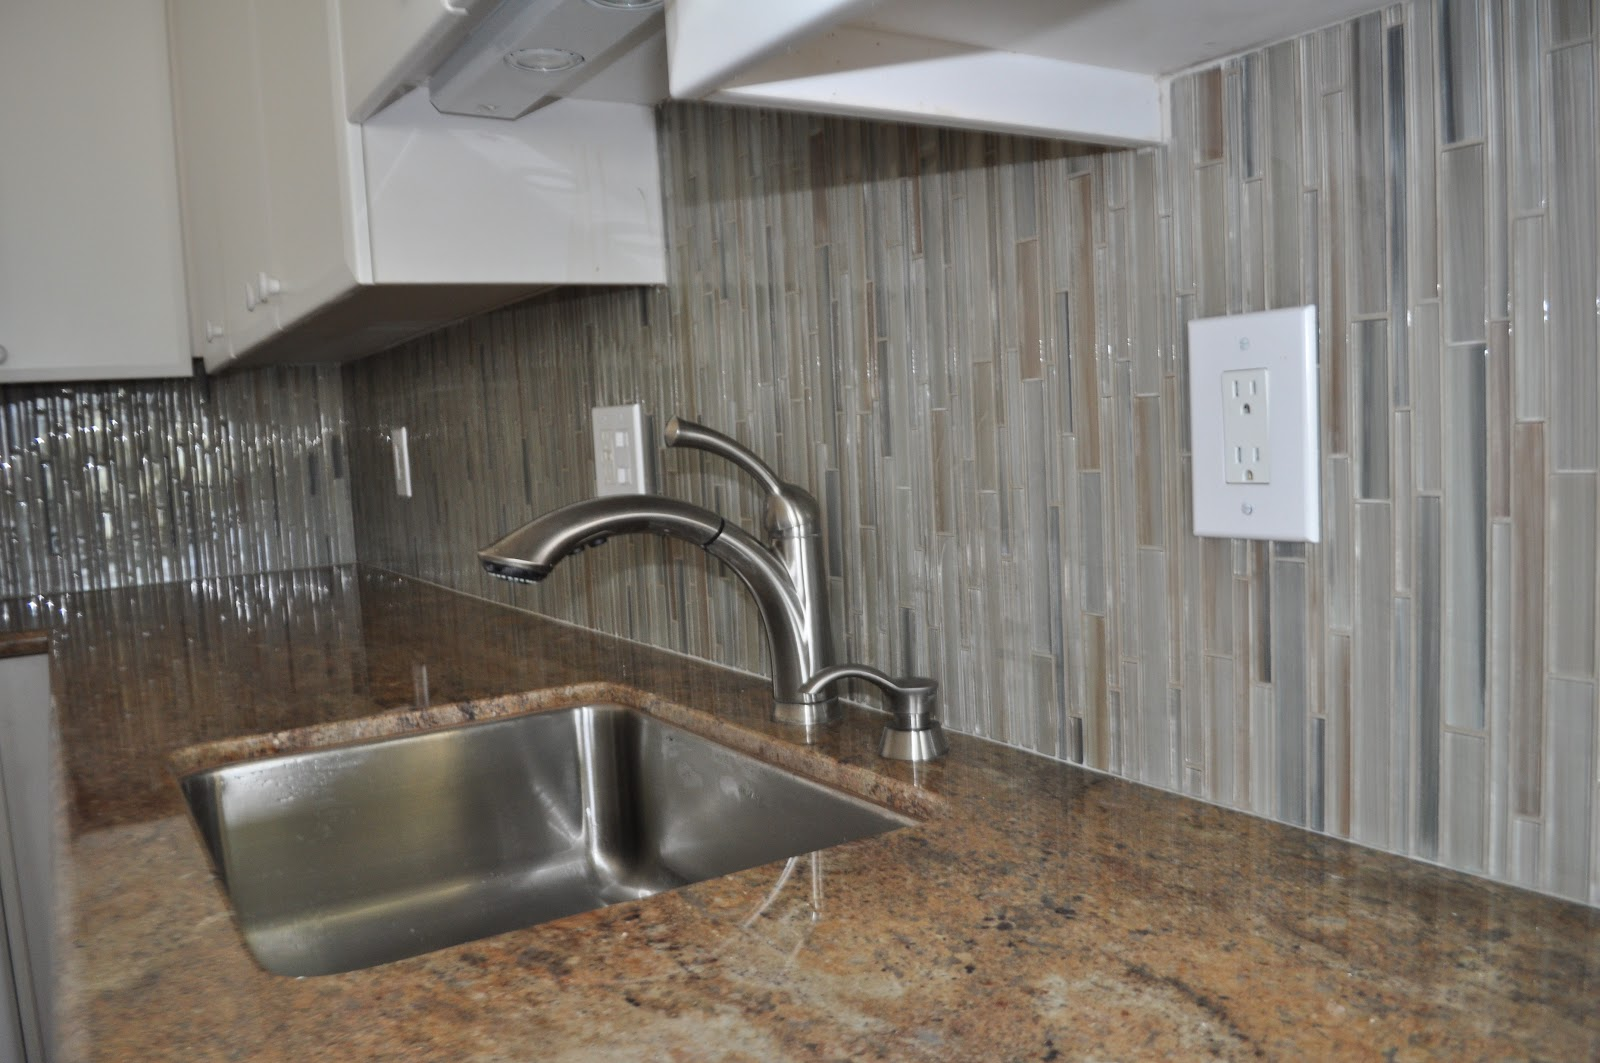 North Kihei Glass Tile Backsplash